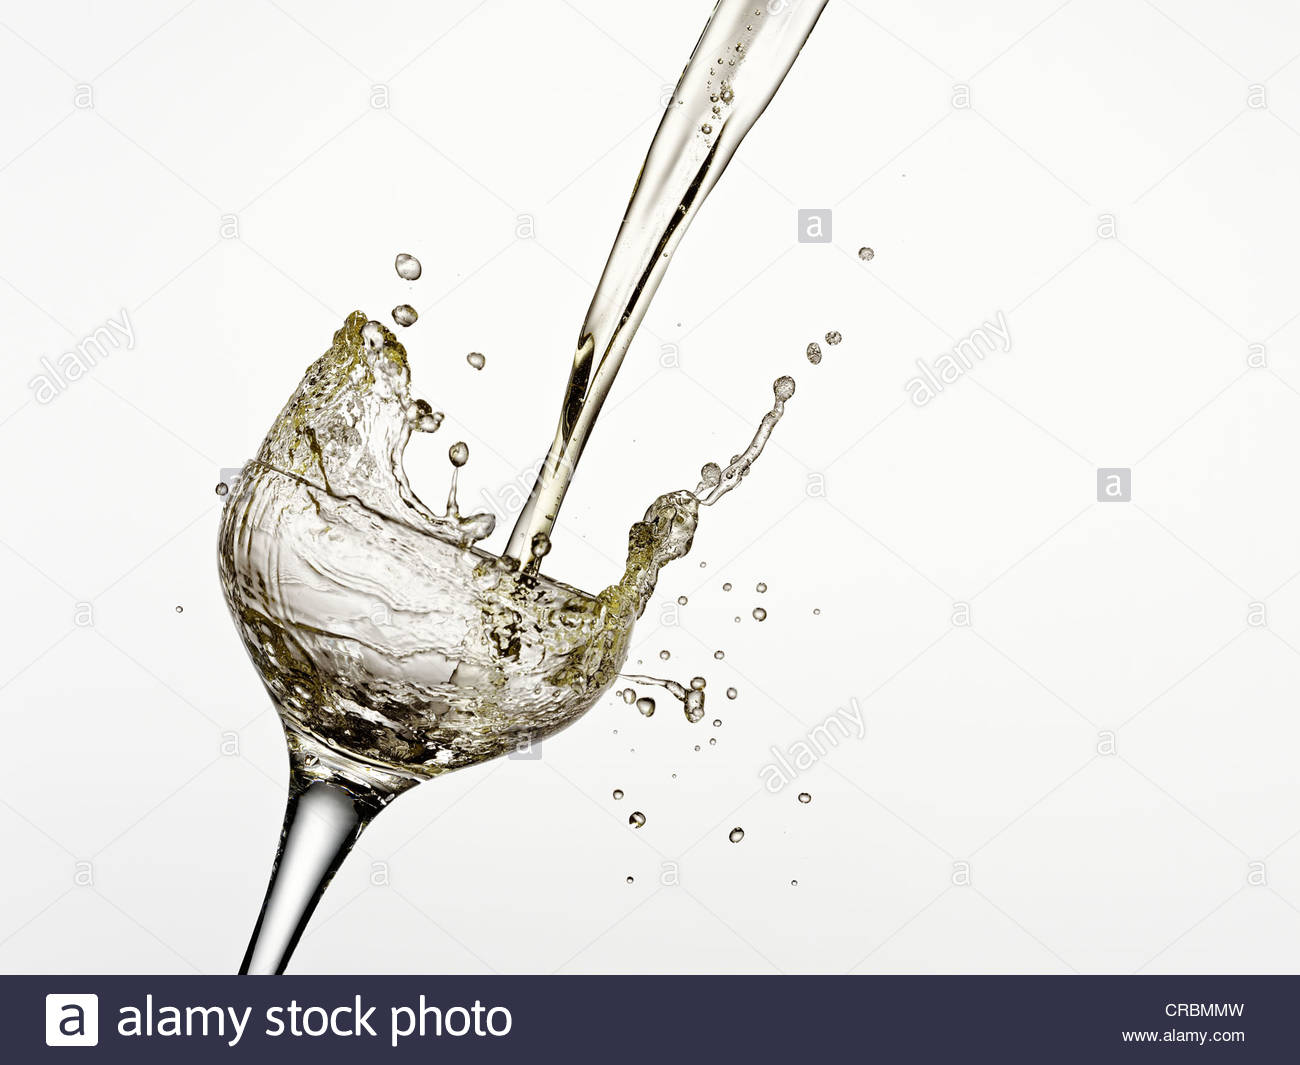 champagne being poured into glass stock photo 48815561 alamy